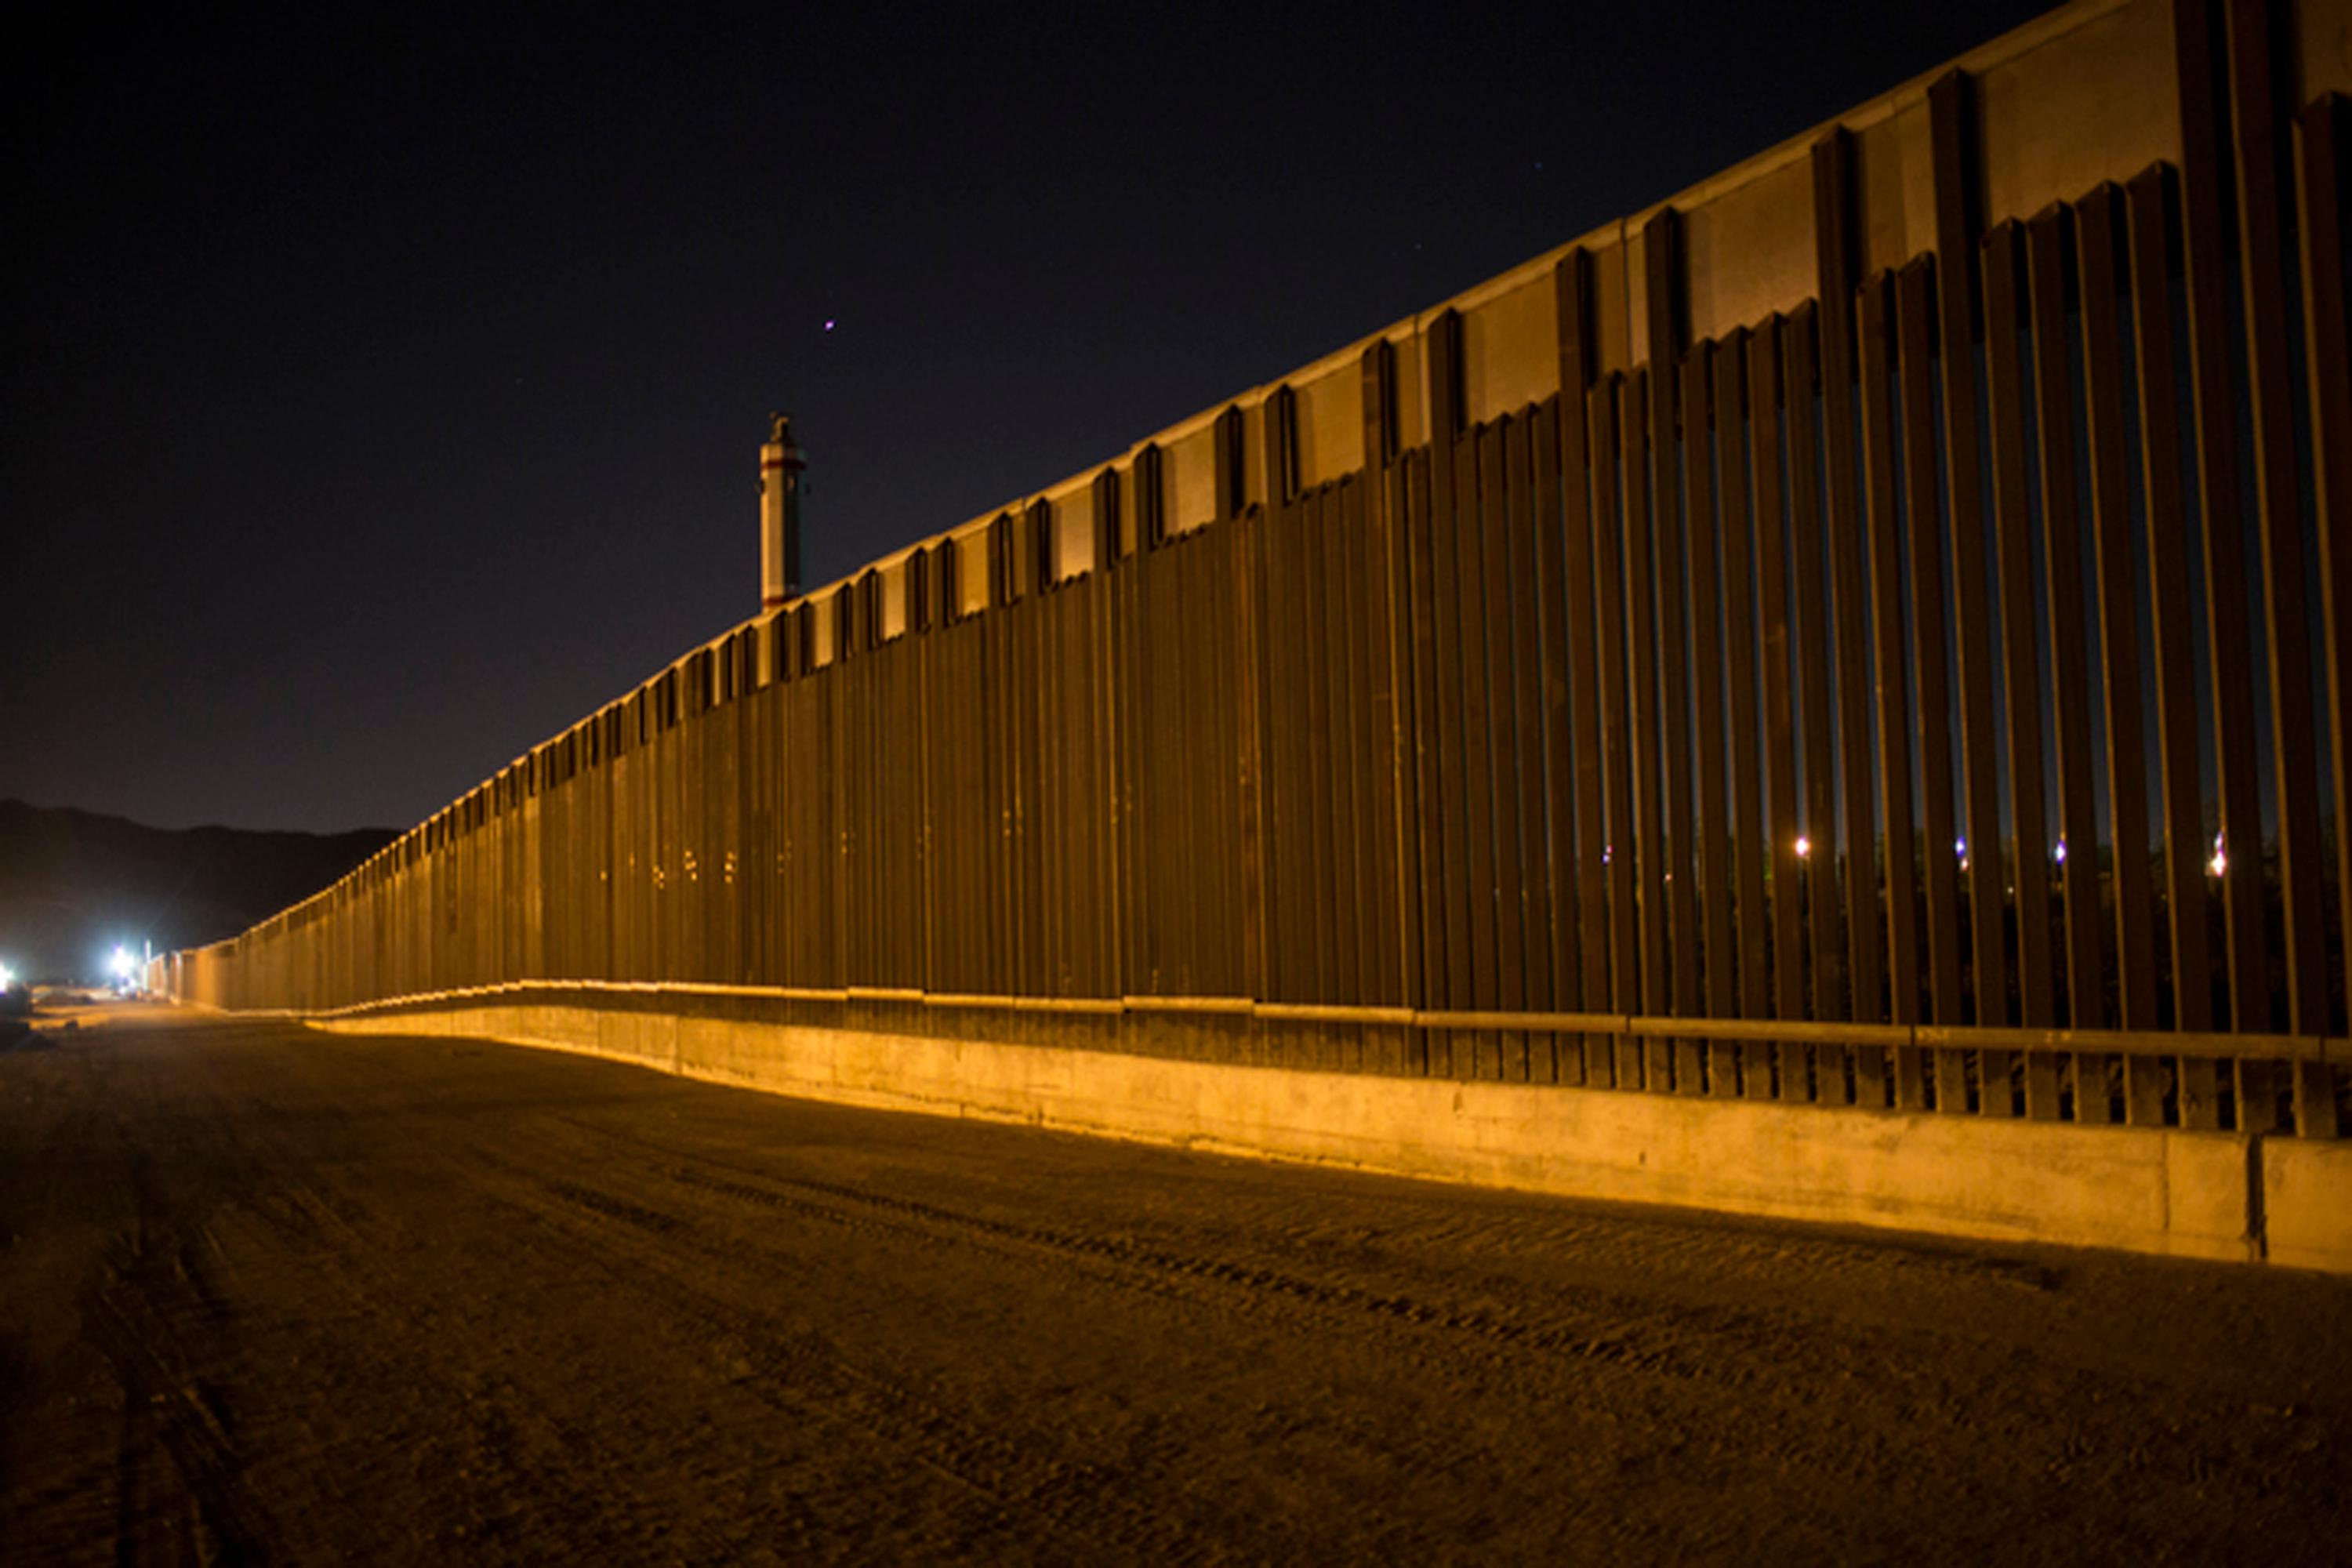 FILE - This March 30, 2017 file photo shows a portion of the new steel border fence that stretches along the US-Mexico border in Sunland Park, N.M. (AP Photo/Rodrigo Abd, File)<p></p>